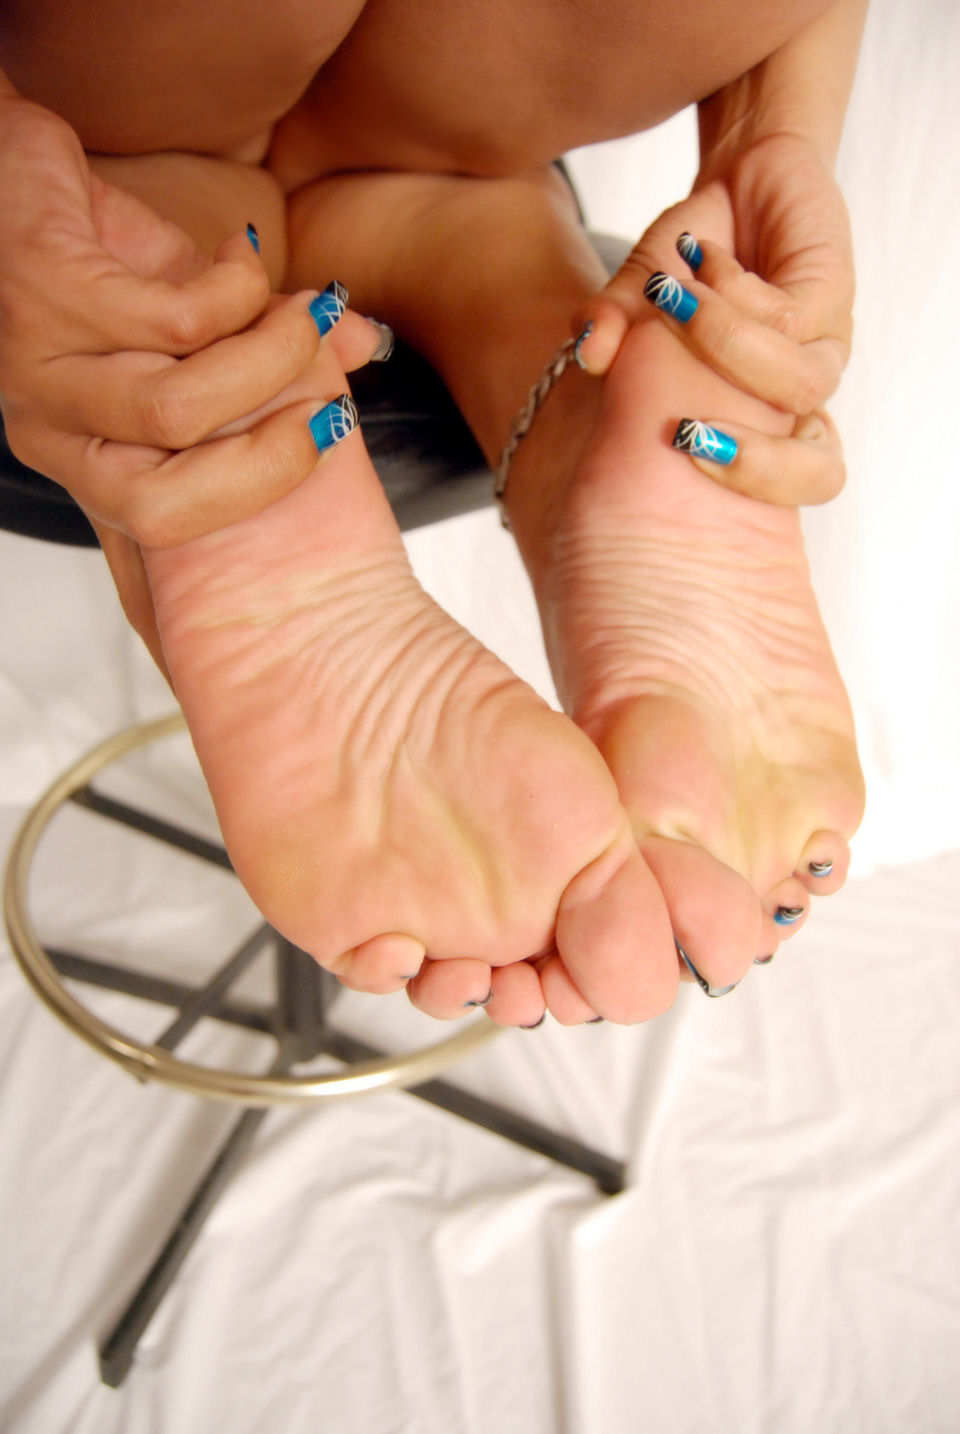 Lady steph footjob